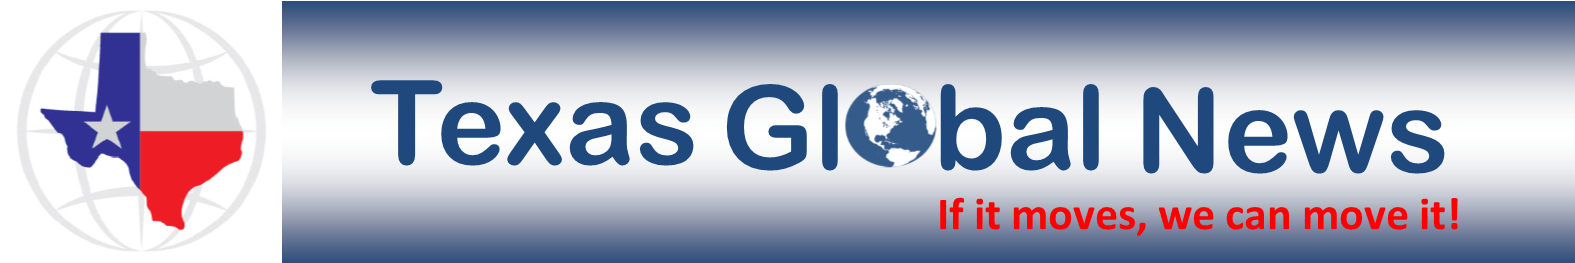 Texas Global Services - Global News